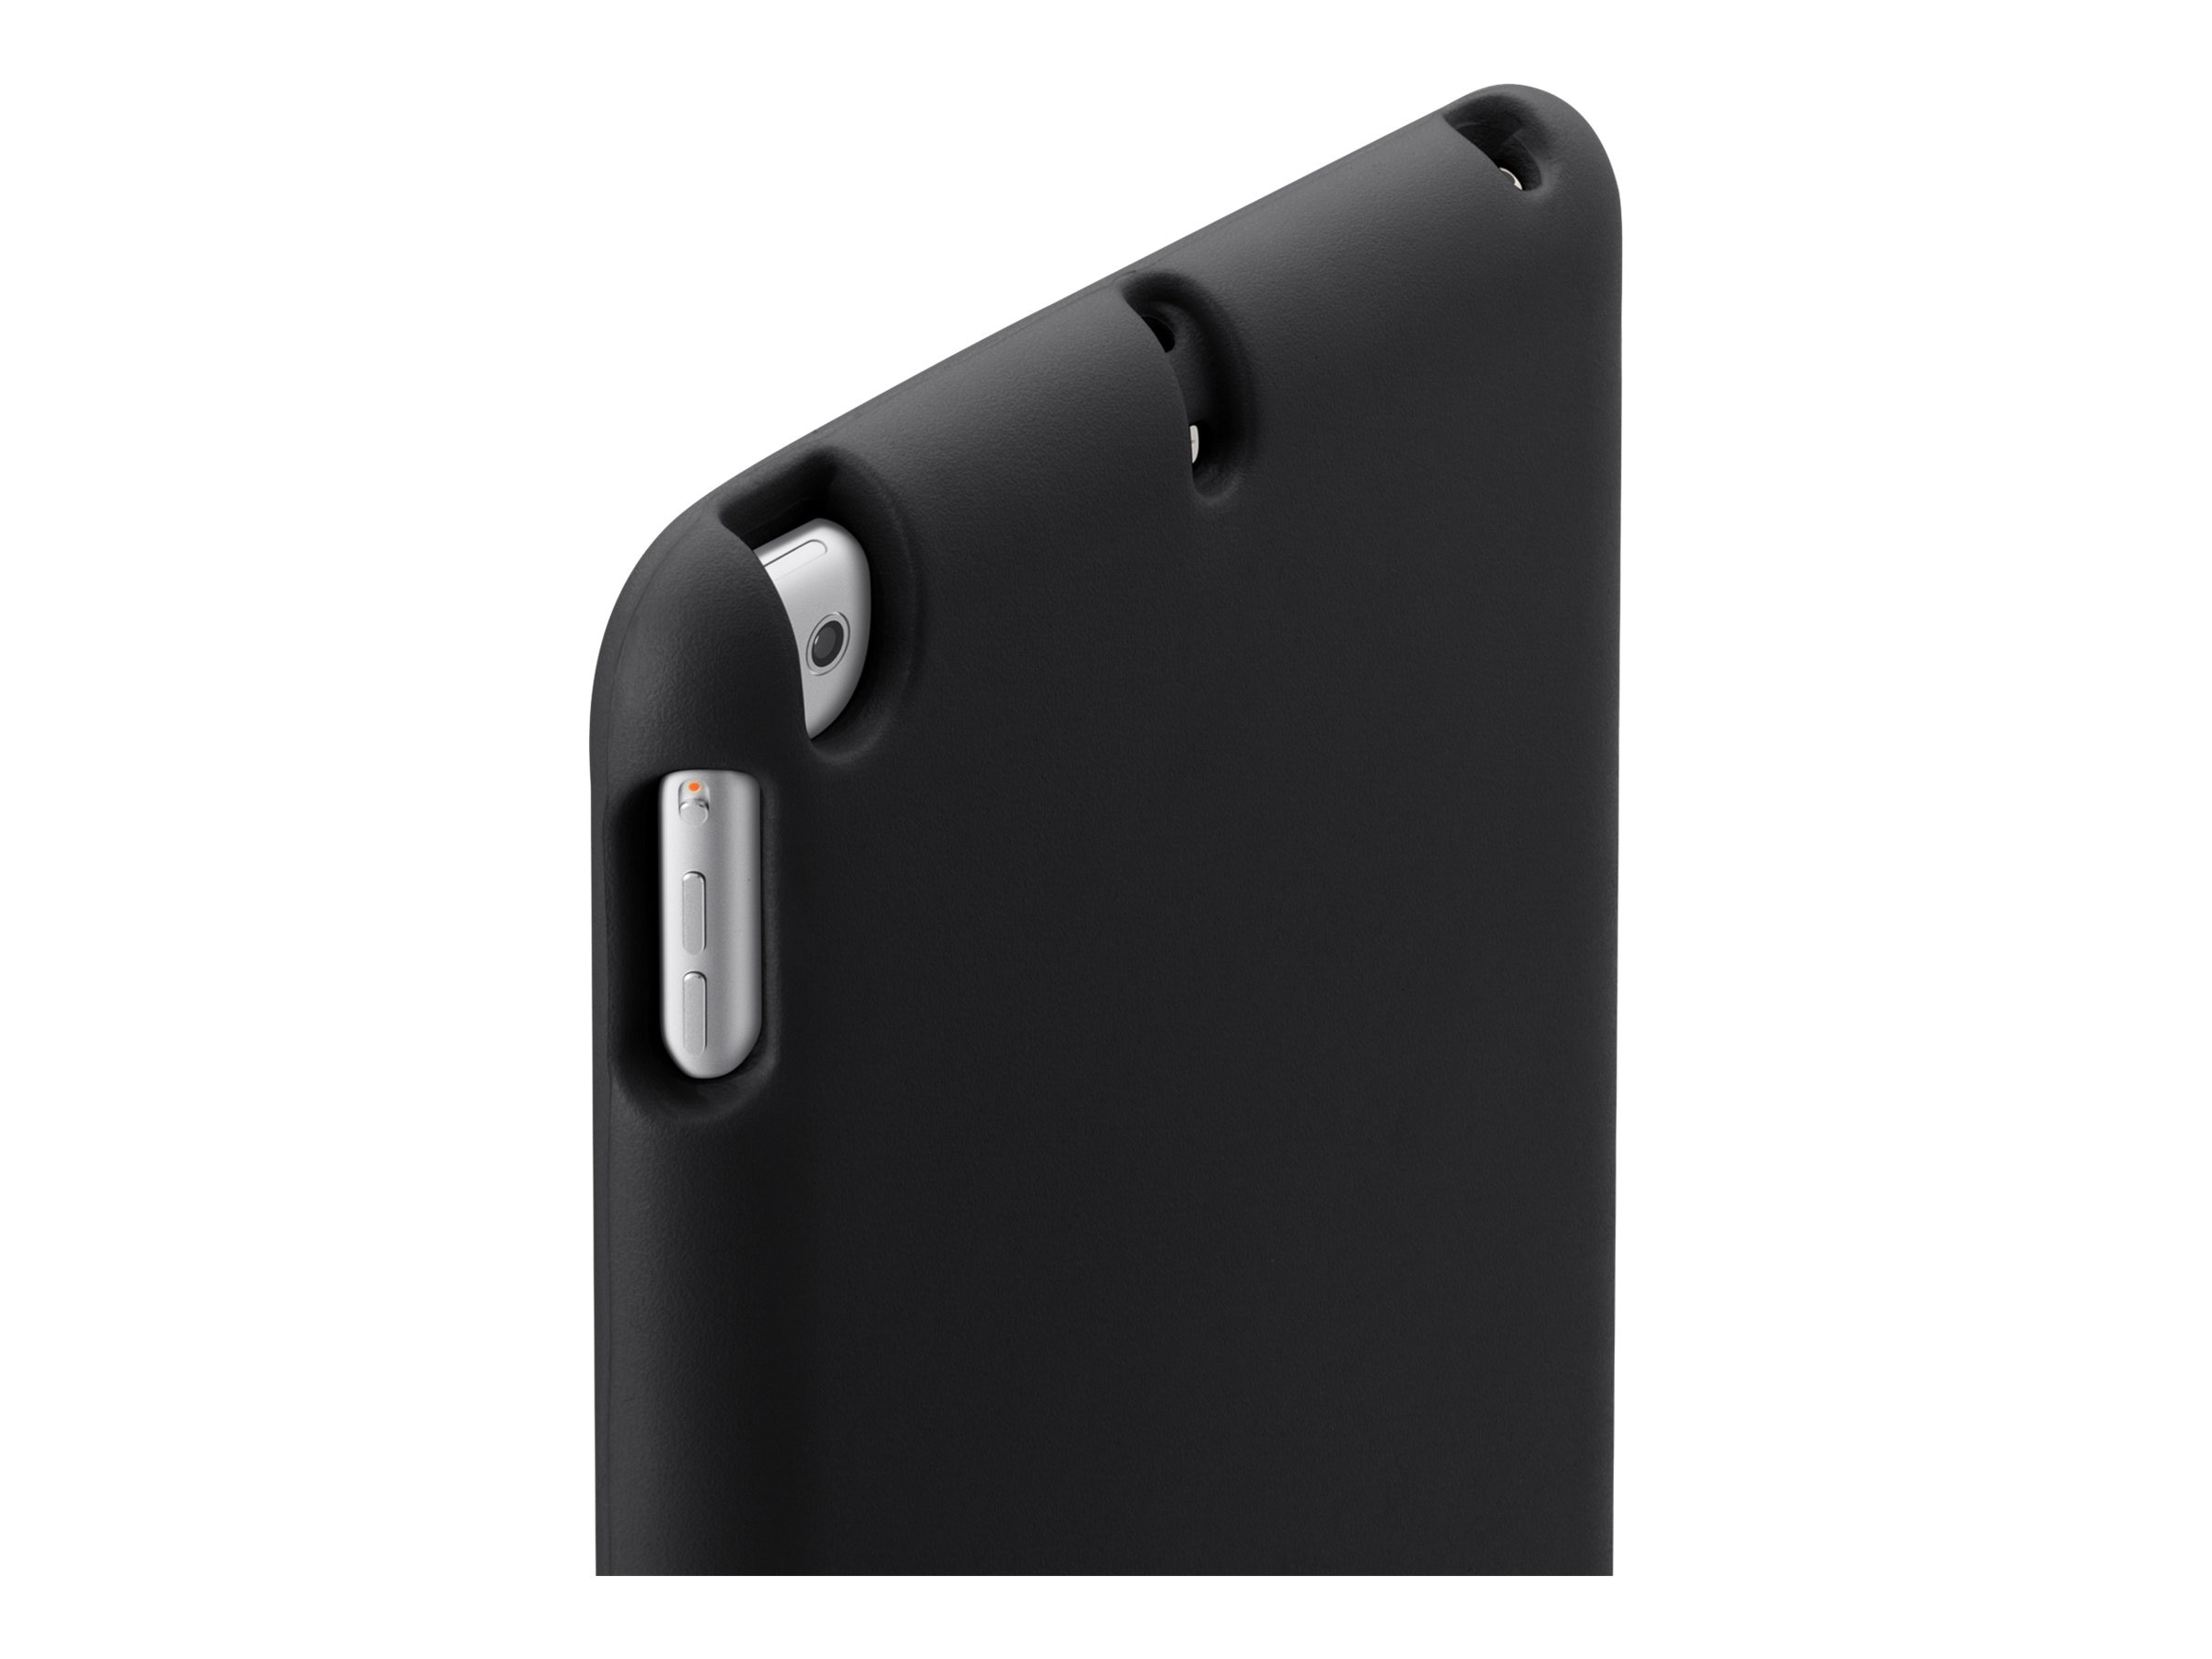 Belkin Air Protect Case for iPad Air, Black, B2A068-C00, 16654615, Carrying Cases - Tablets & eReaders